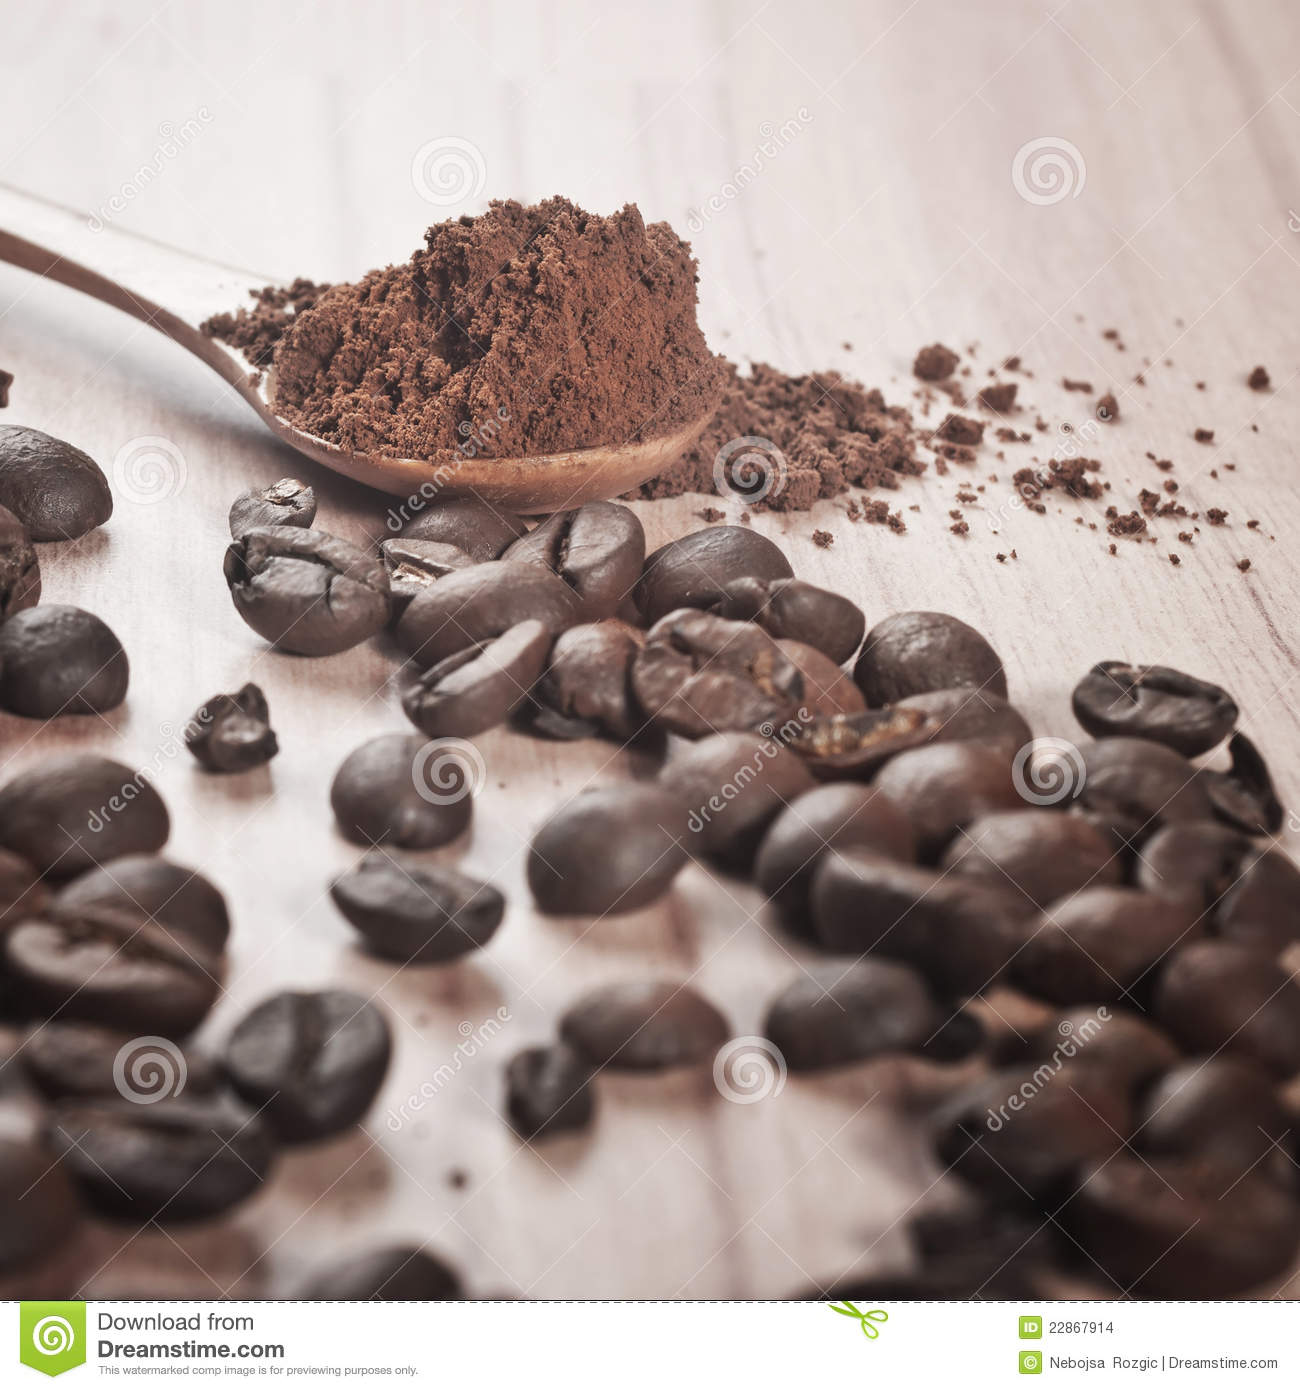 Coffee beans and cocoa